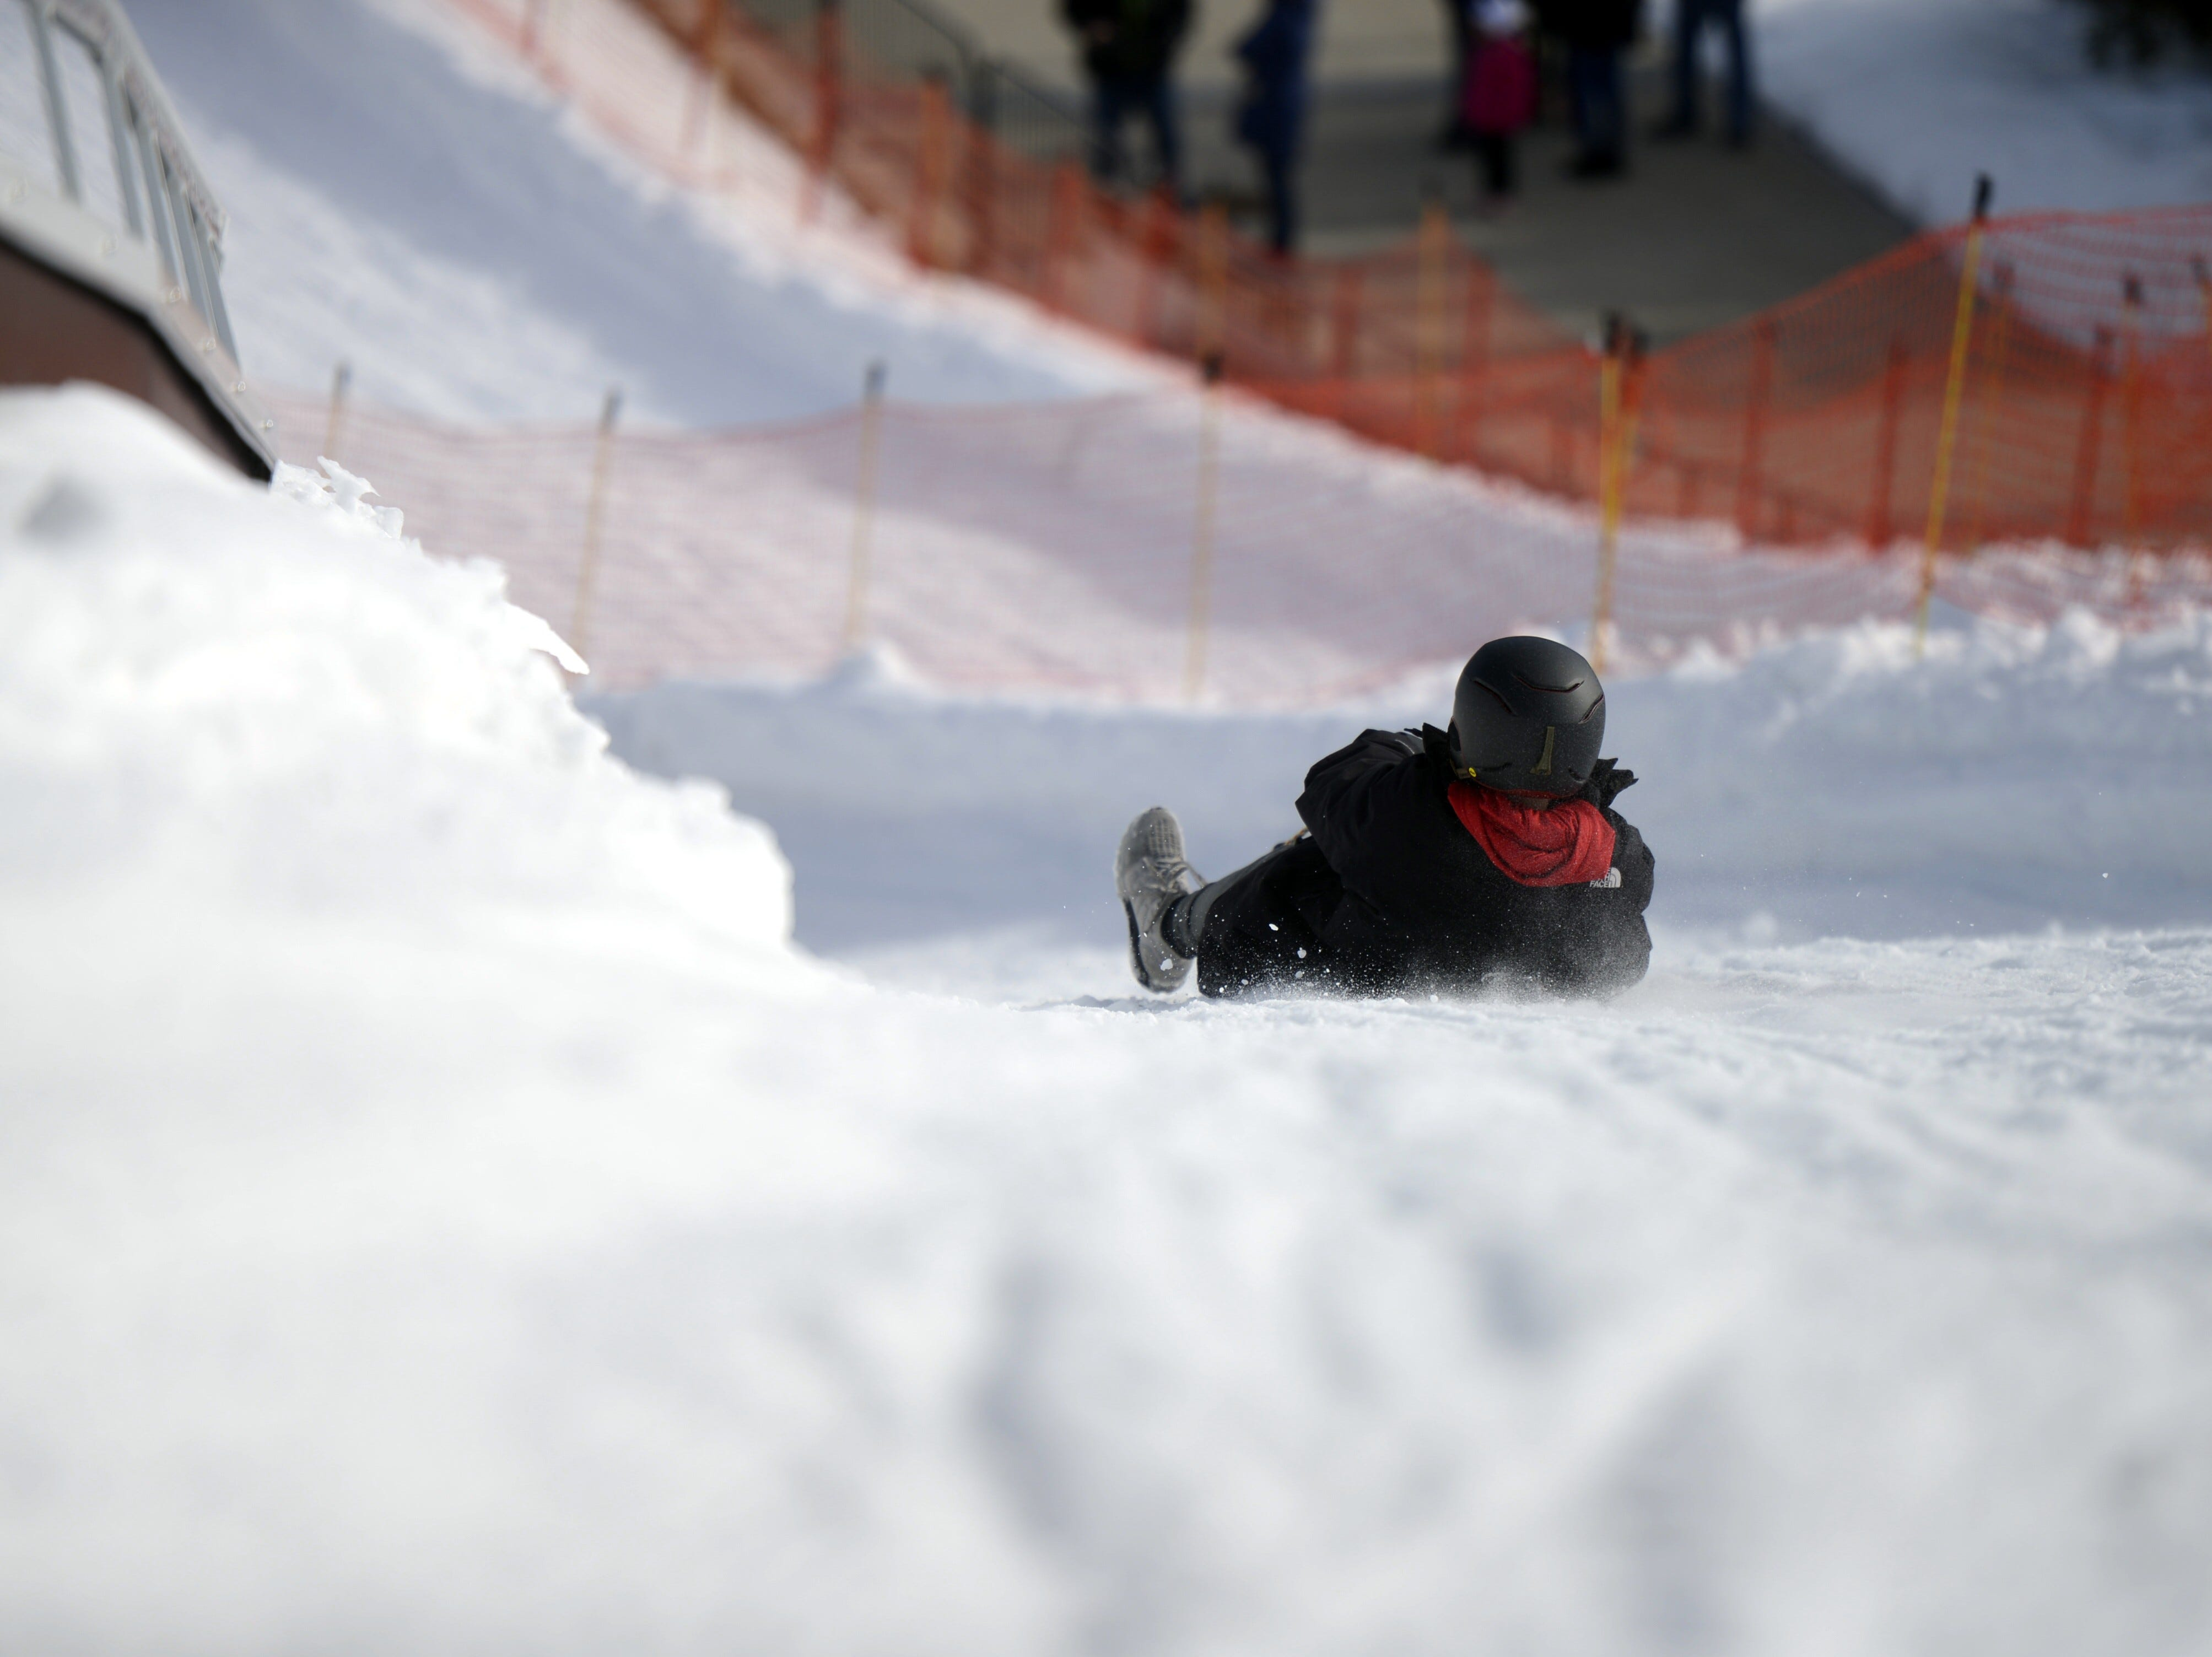 A rider goes down the luge hill at the Titletown Winter Games on Saturday, Feb. 16, 2019.